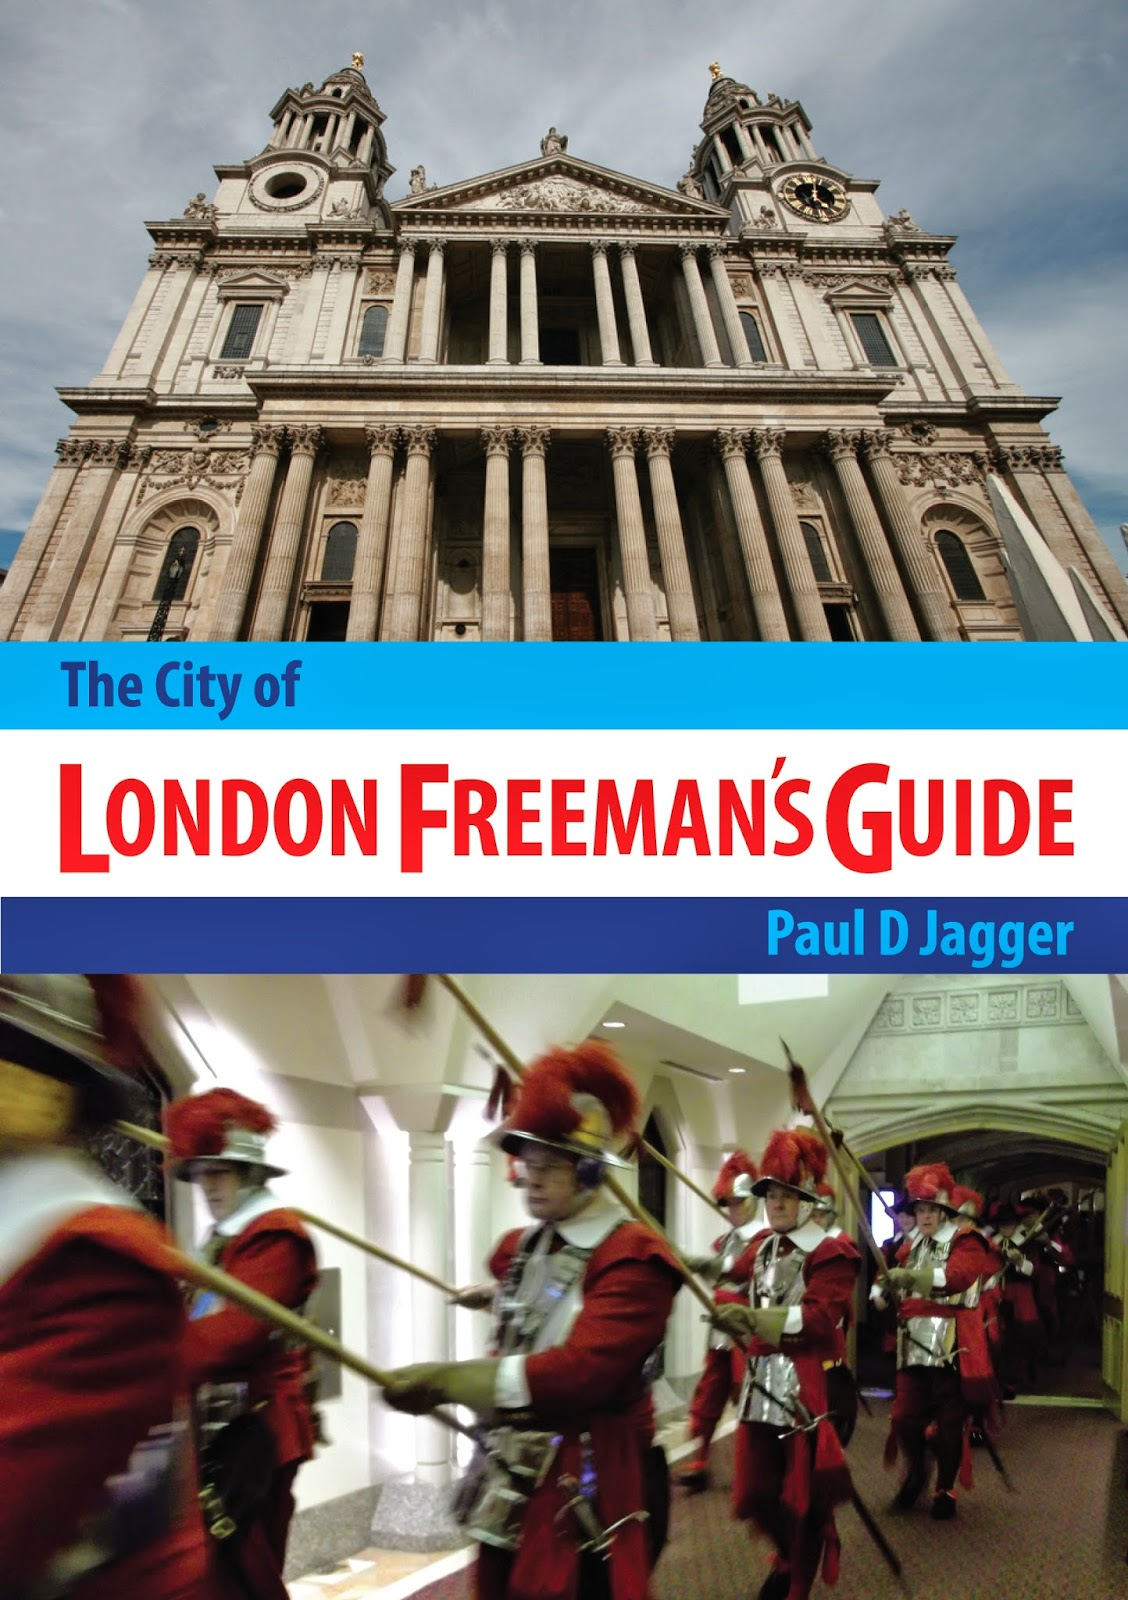 """The City of London Freeman's Guide"" author Paul D Jagger, cover designer: Kura Carpenter"